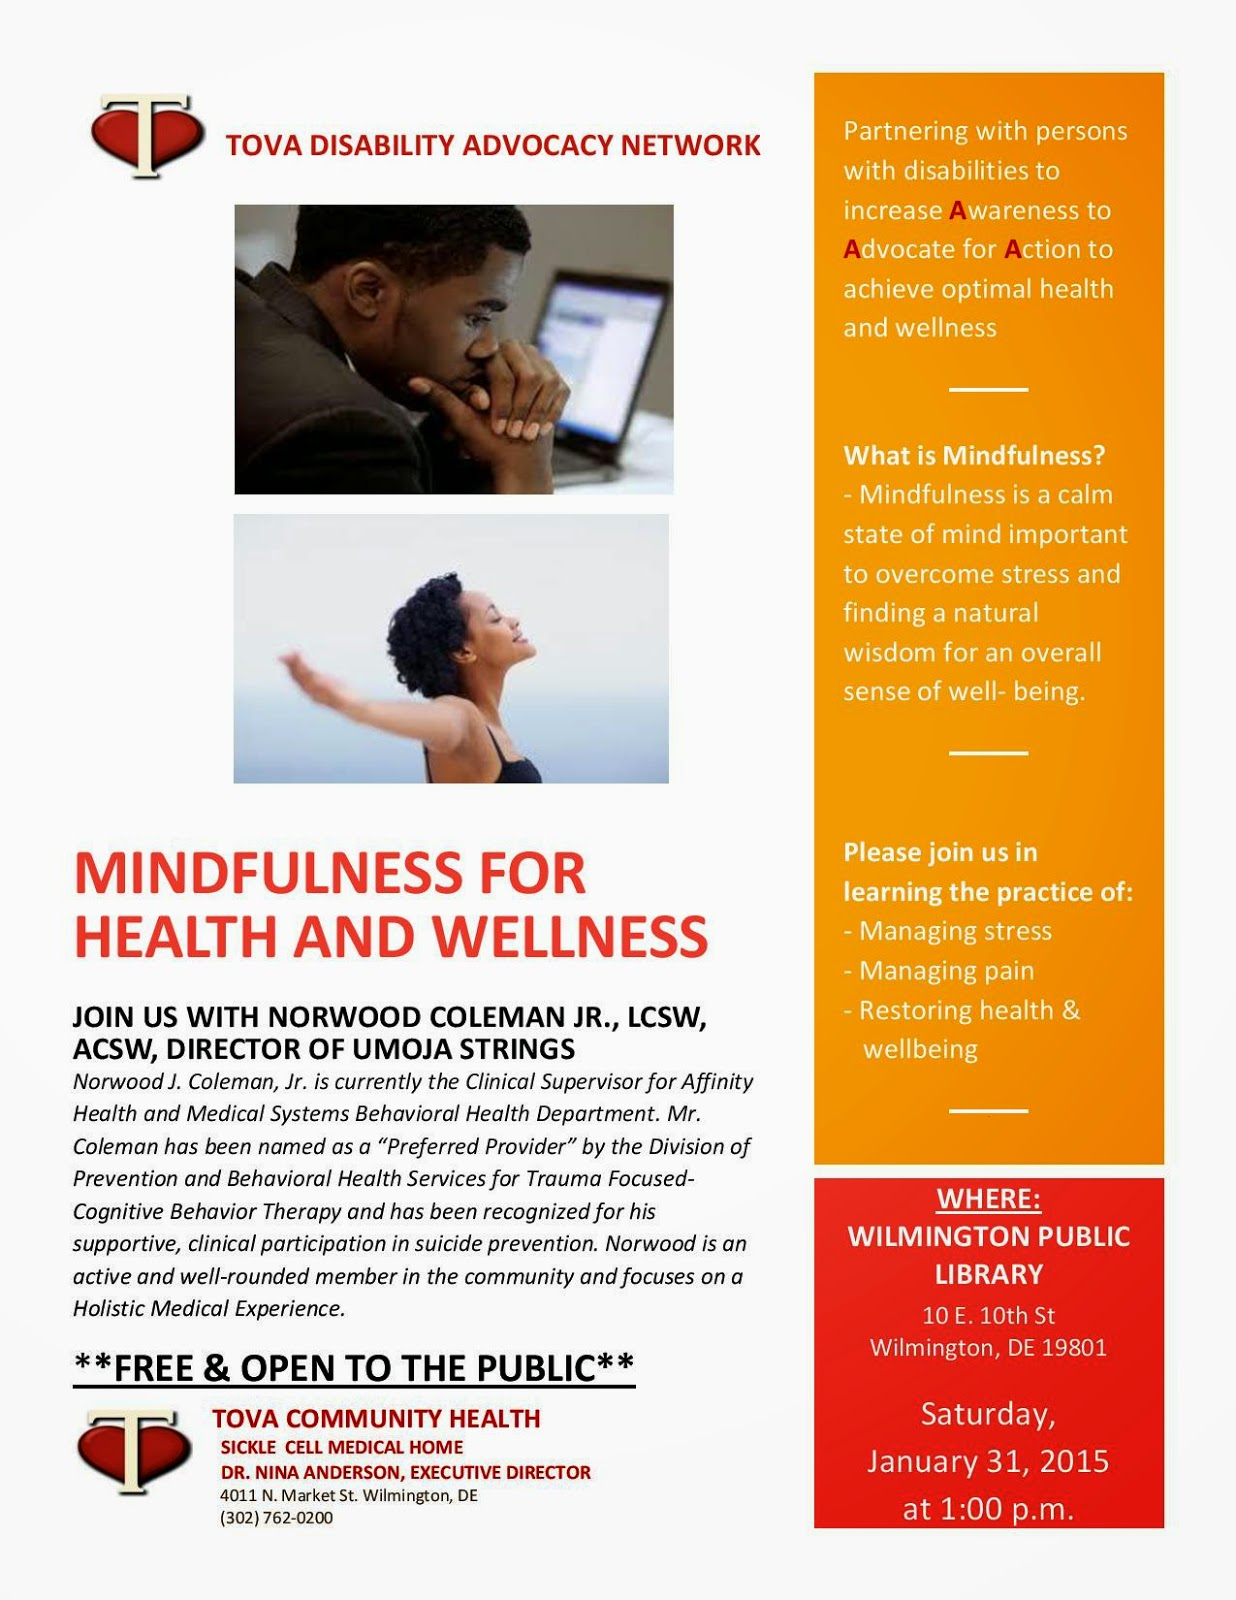 mindfulness and health Mindfulness can be defined as paying attention to the present moment with openness, curiosity, and acceptance mindfulness in every day experiences is best strengthened and supported by a regular meditation practice.